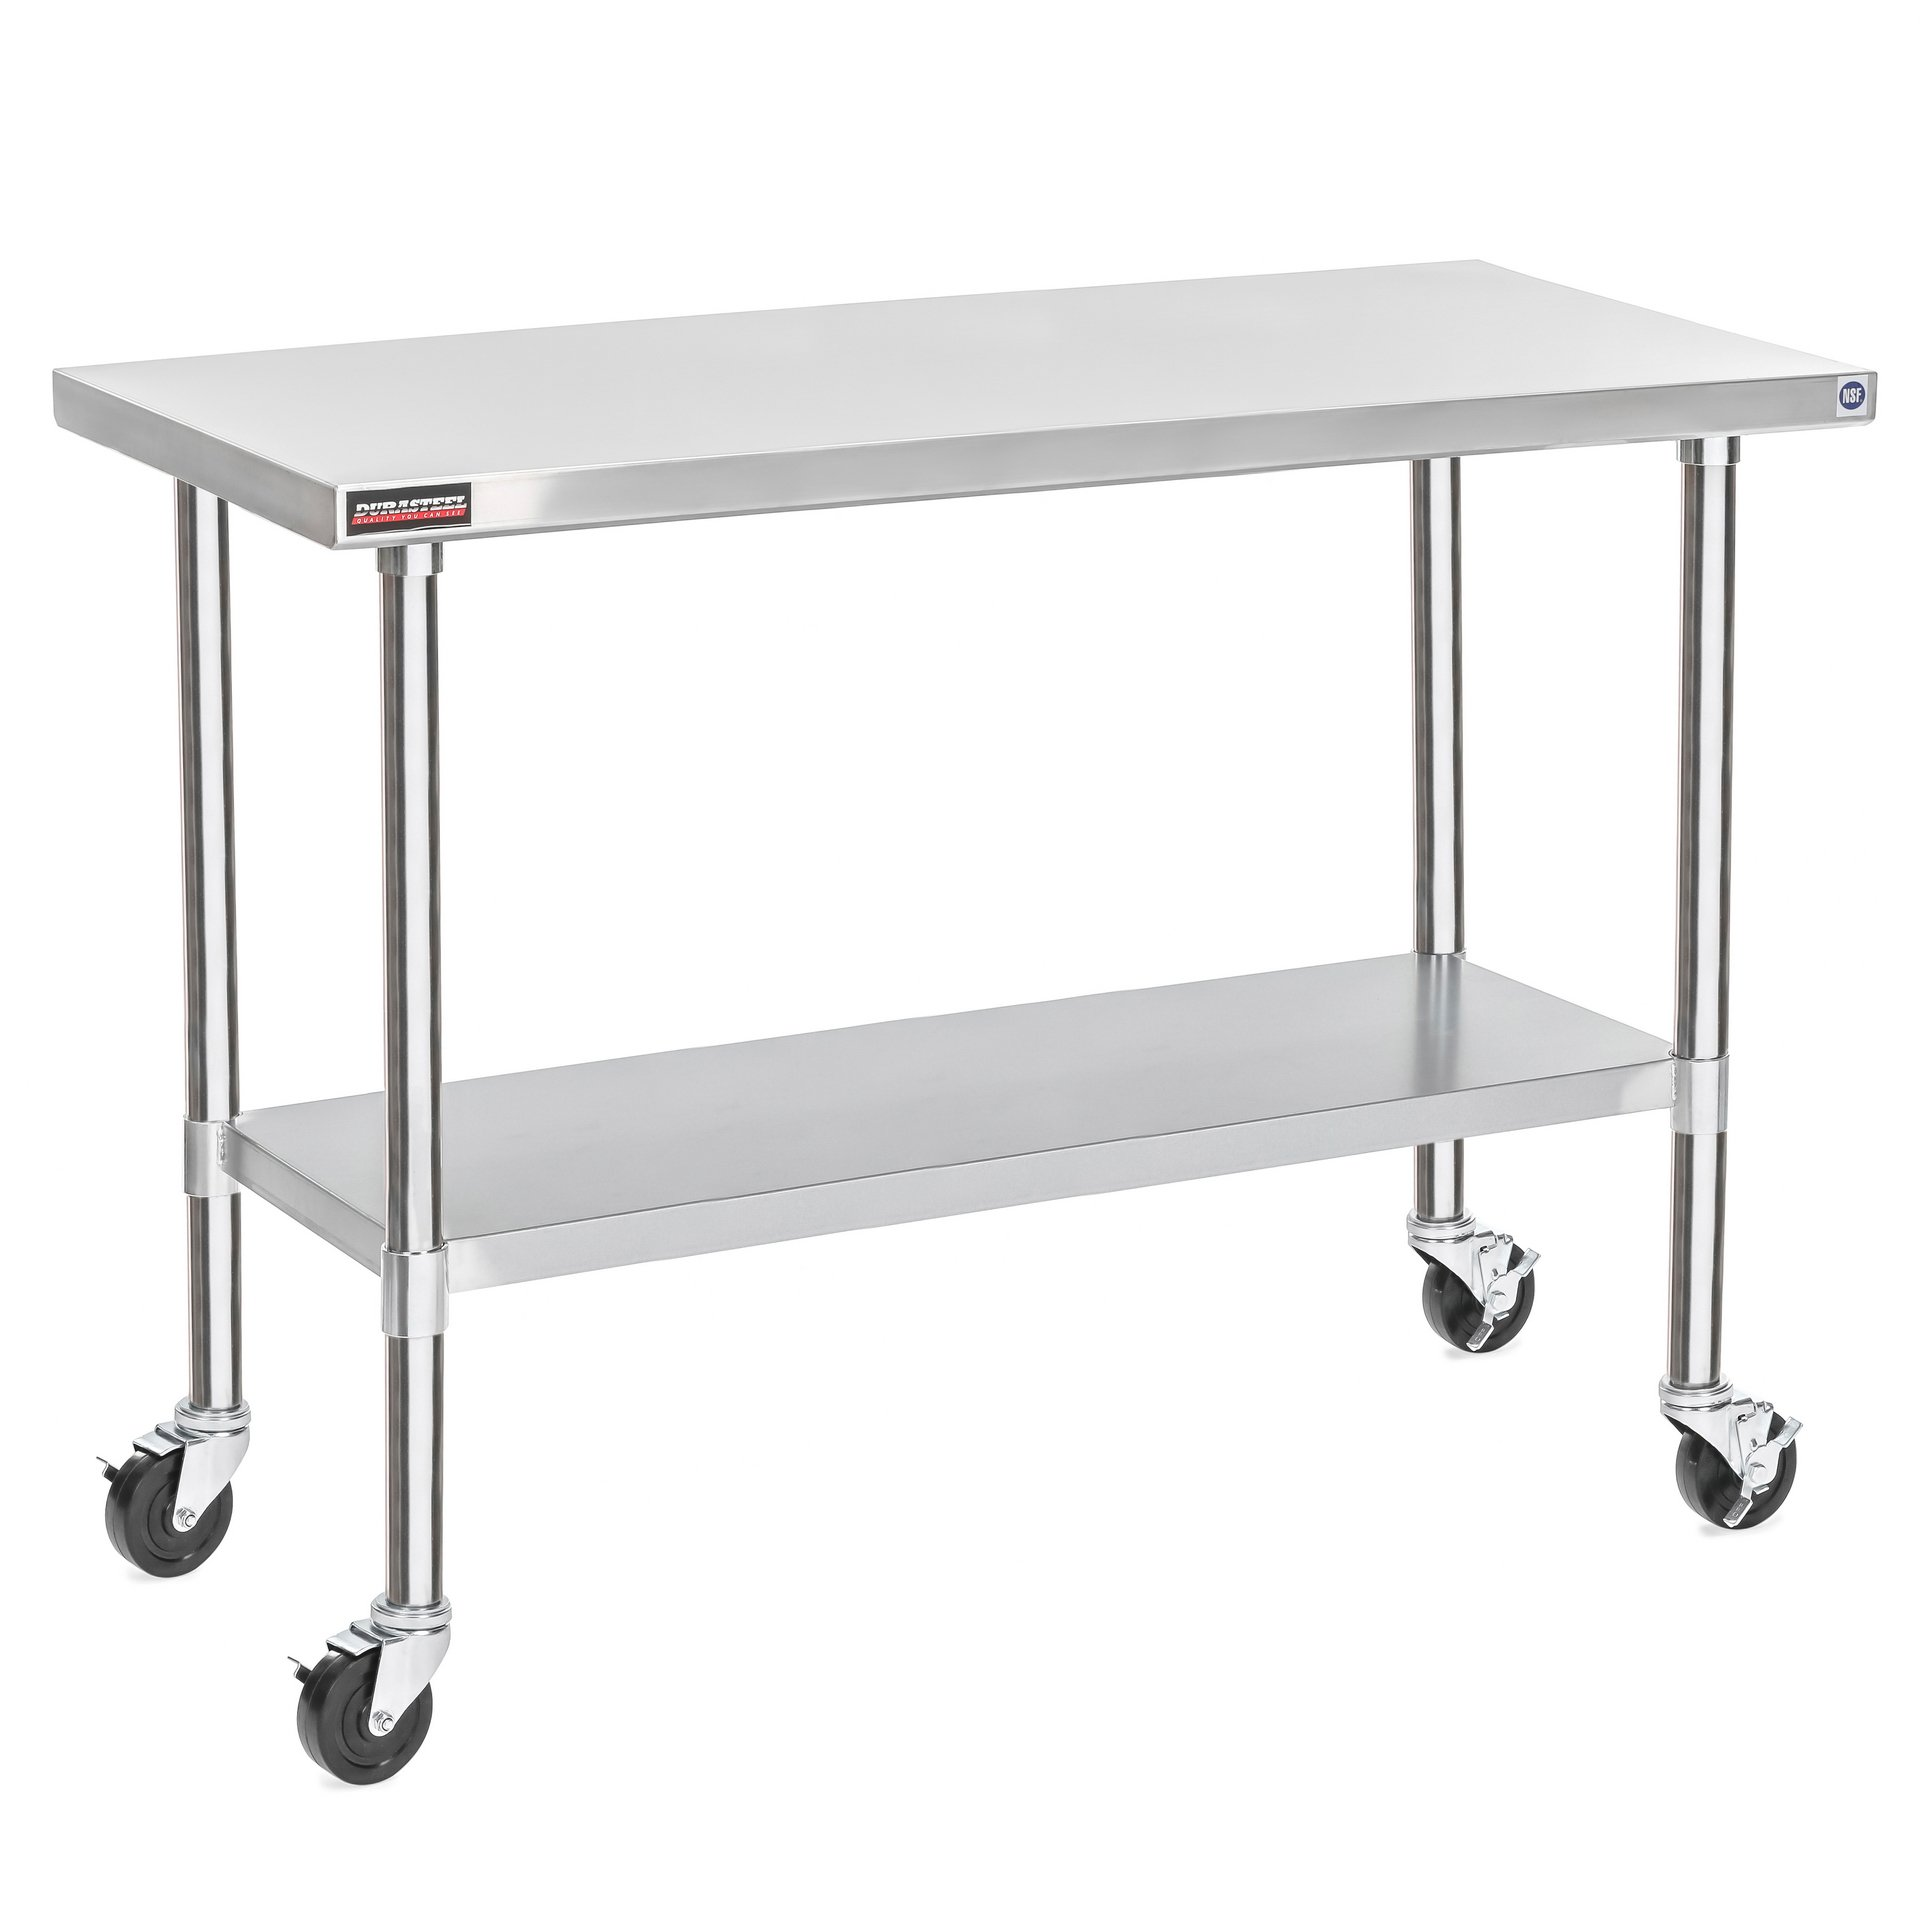 Table On Wheels Cheap Work Table Wheels Find Work Table Wheels Deals On Line At